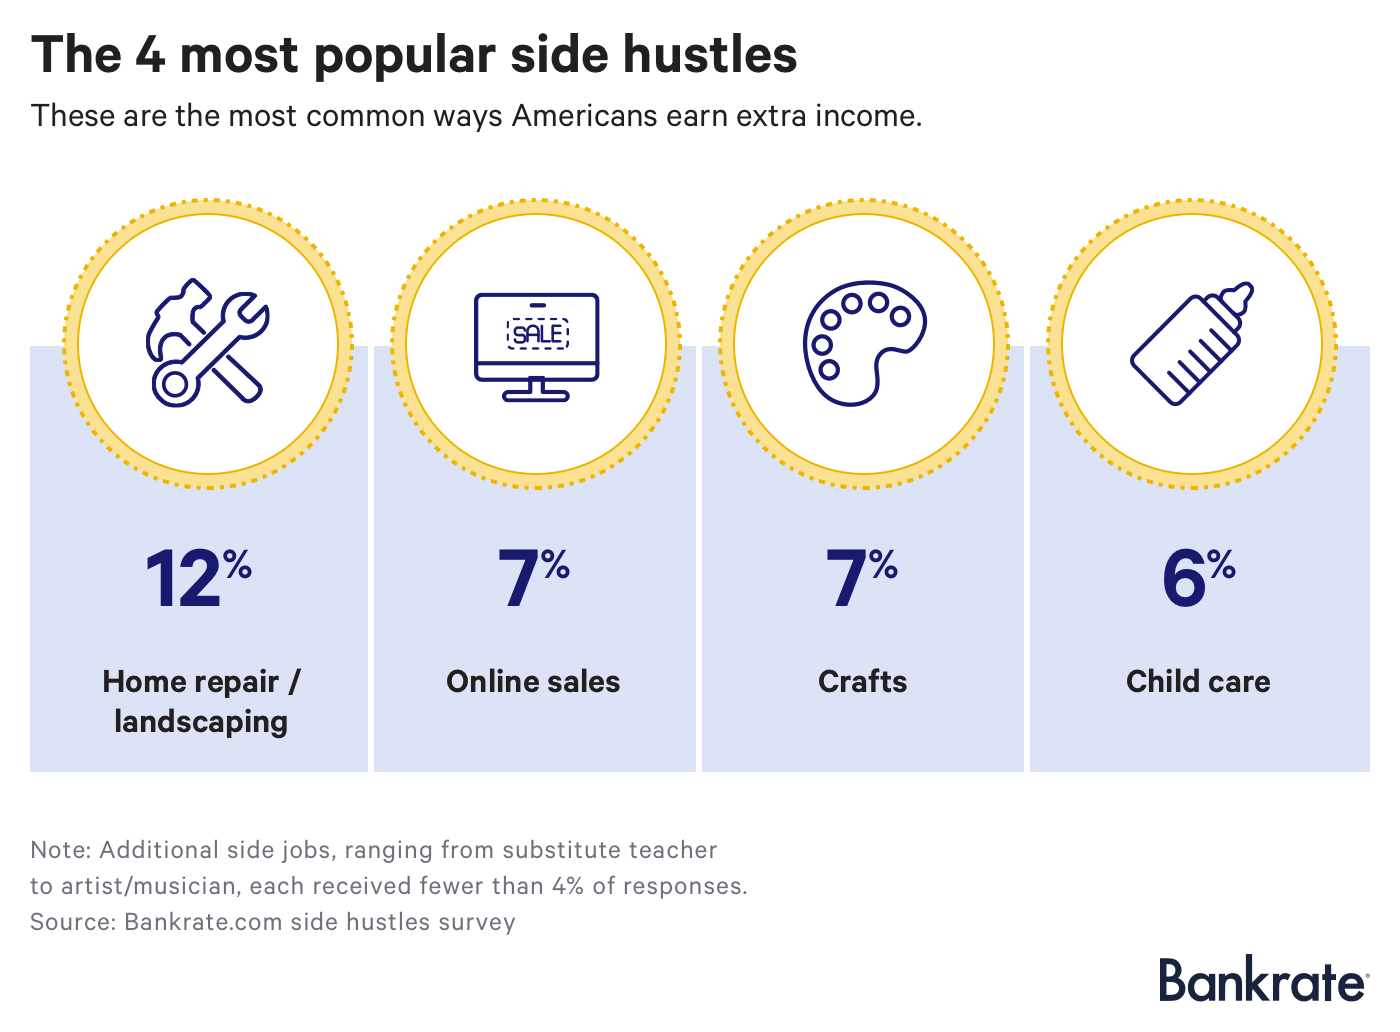 The 4 most popular side hustles